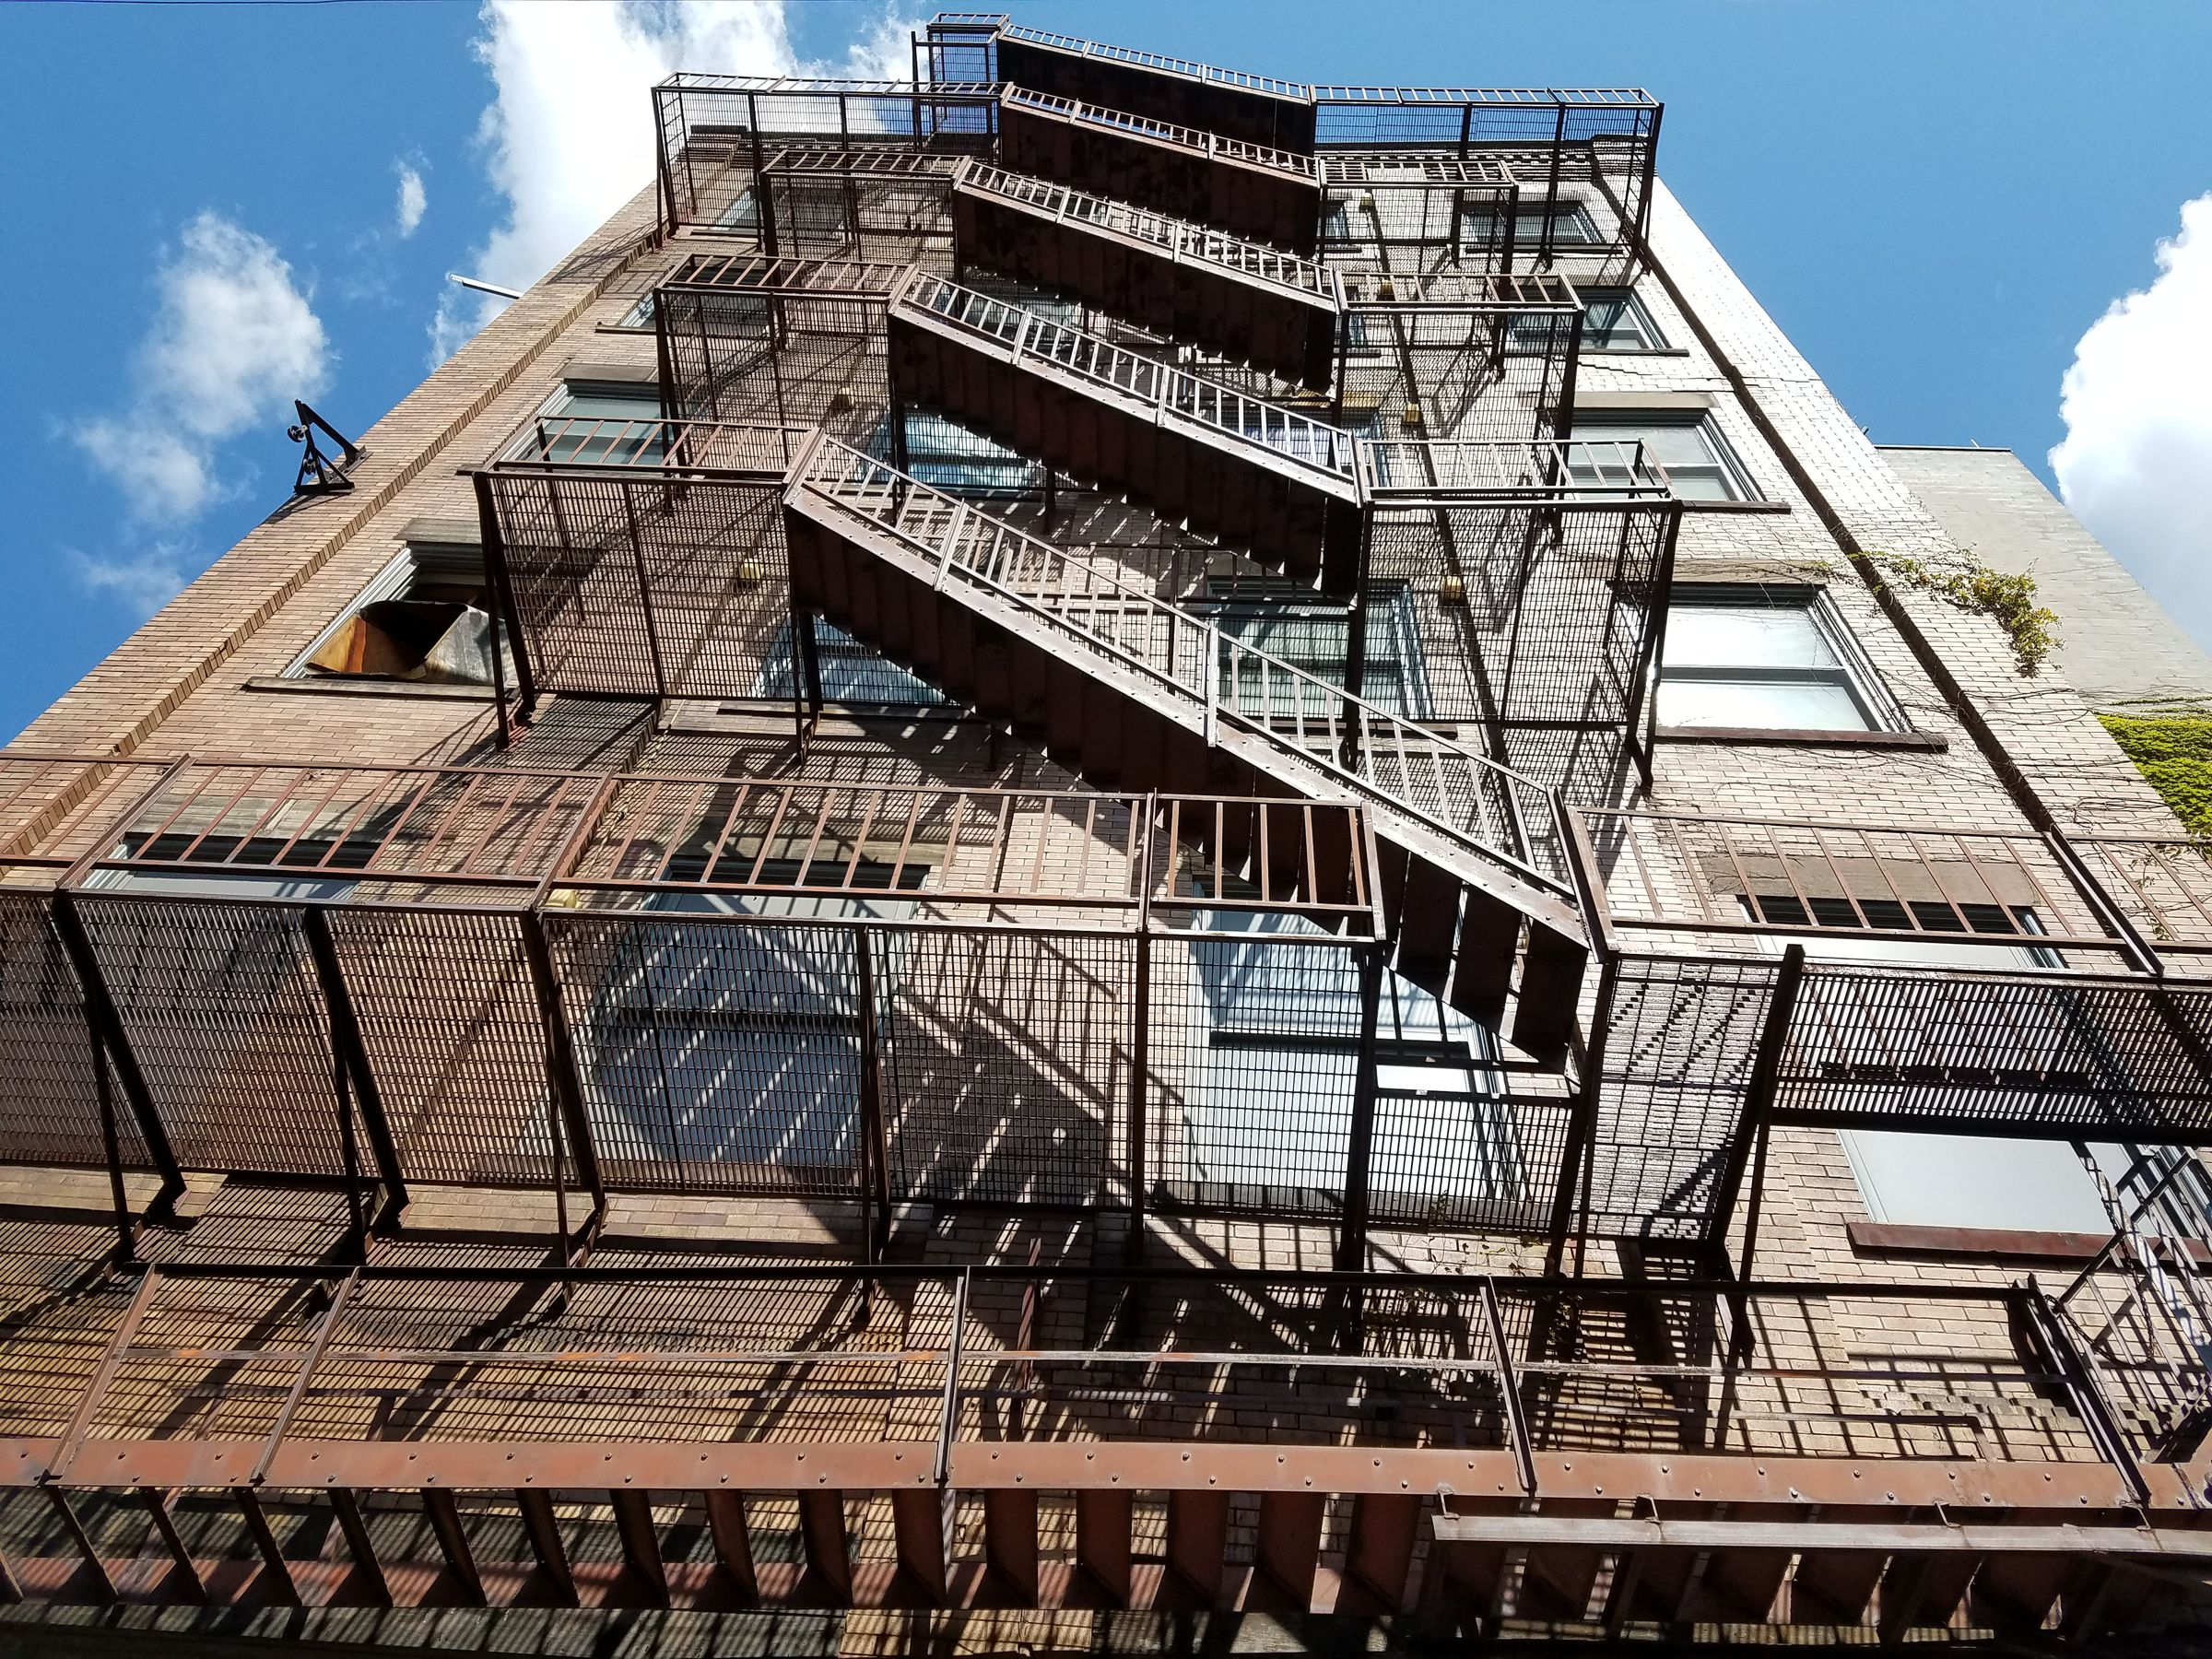 Looking up from street level at the exterior of a 6-story red brick building. The face of the building reflects a bright morning sun, and a fire escape casts sharp shadows on it. The sky clear blue, aside from a couple clouds.